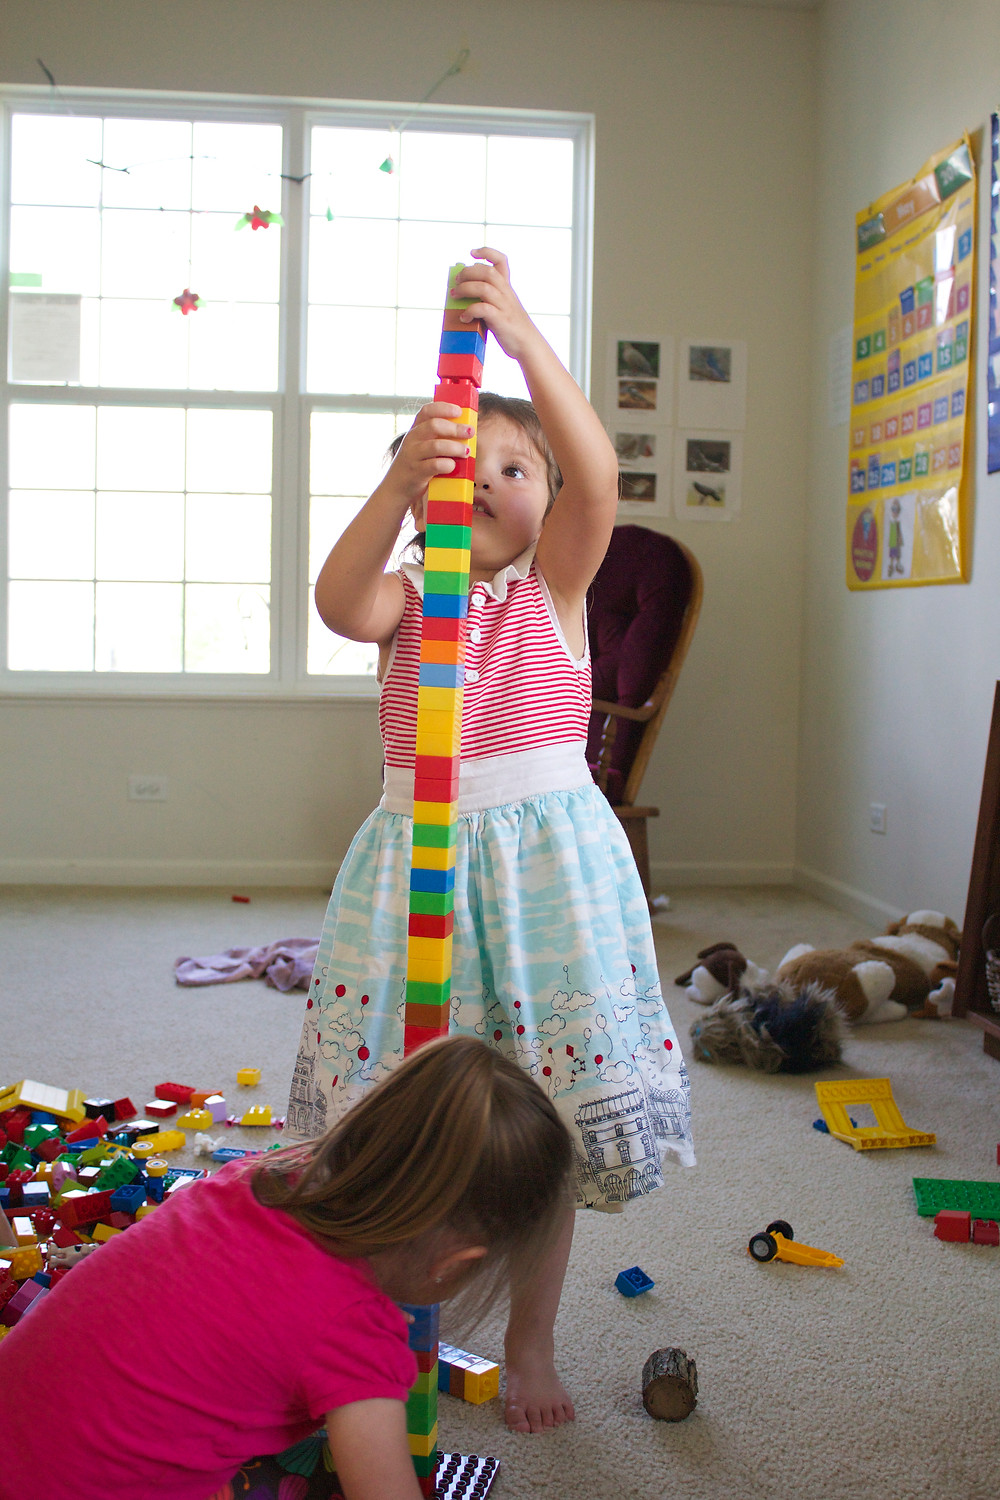 Lego fun at Blue Sky Daycare home dayare